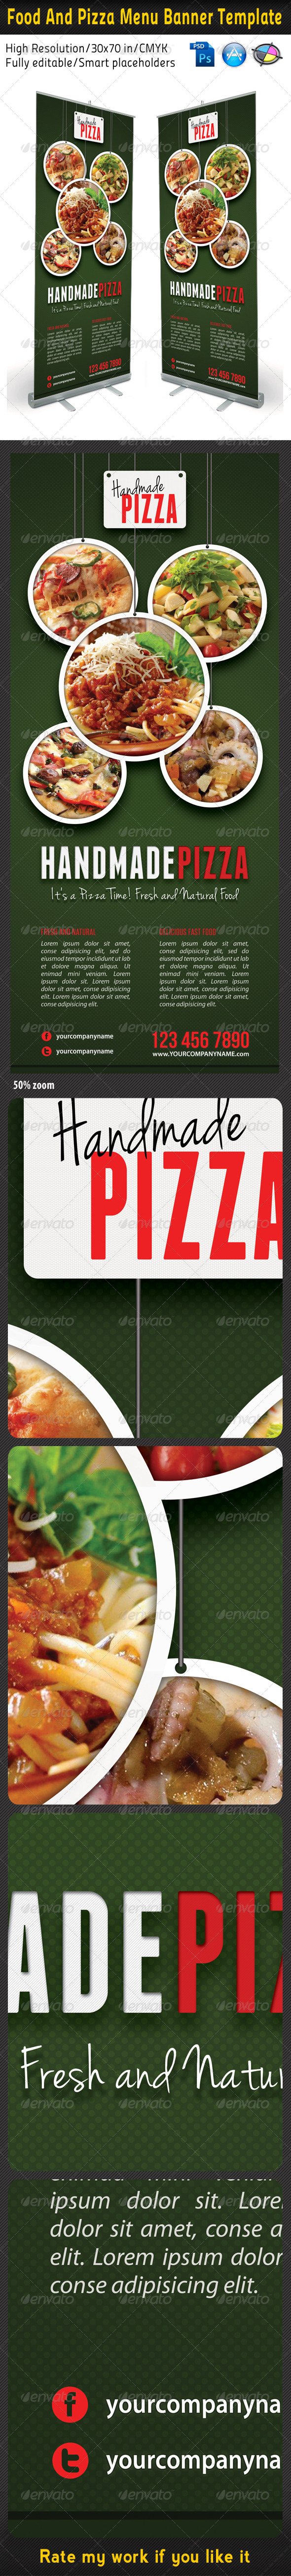 Food And Pizza Menu Banner Template 03 - Signage Print Templates